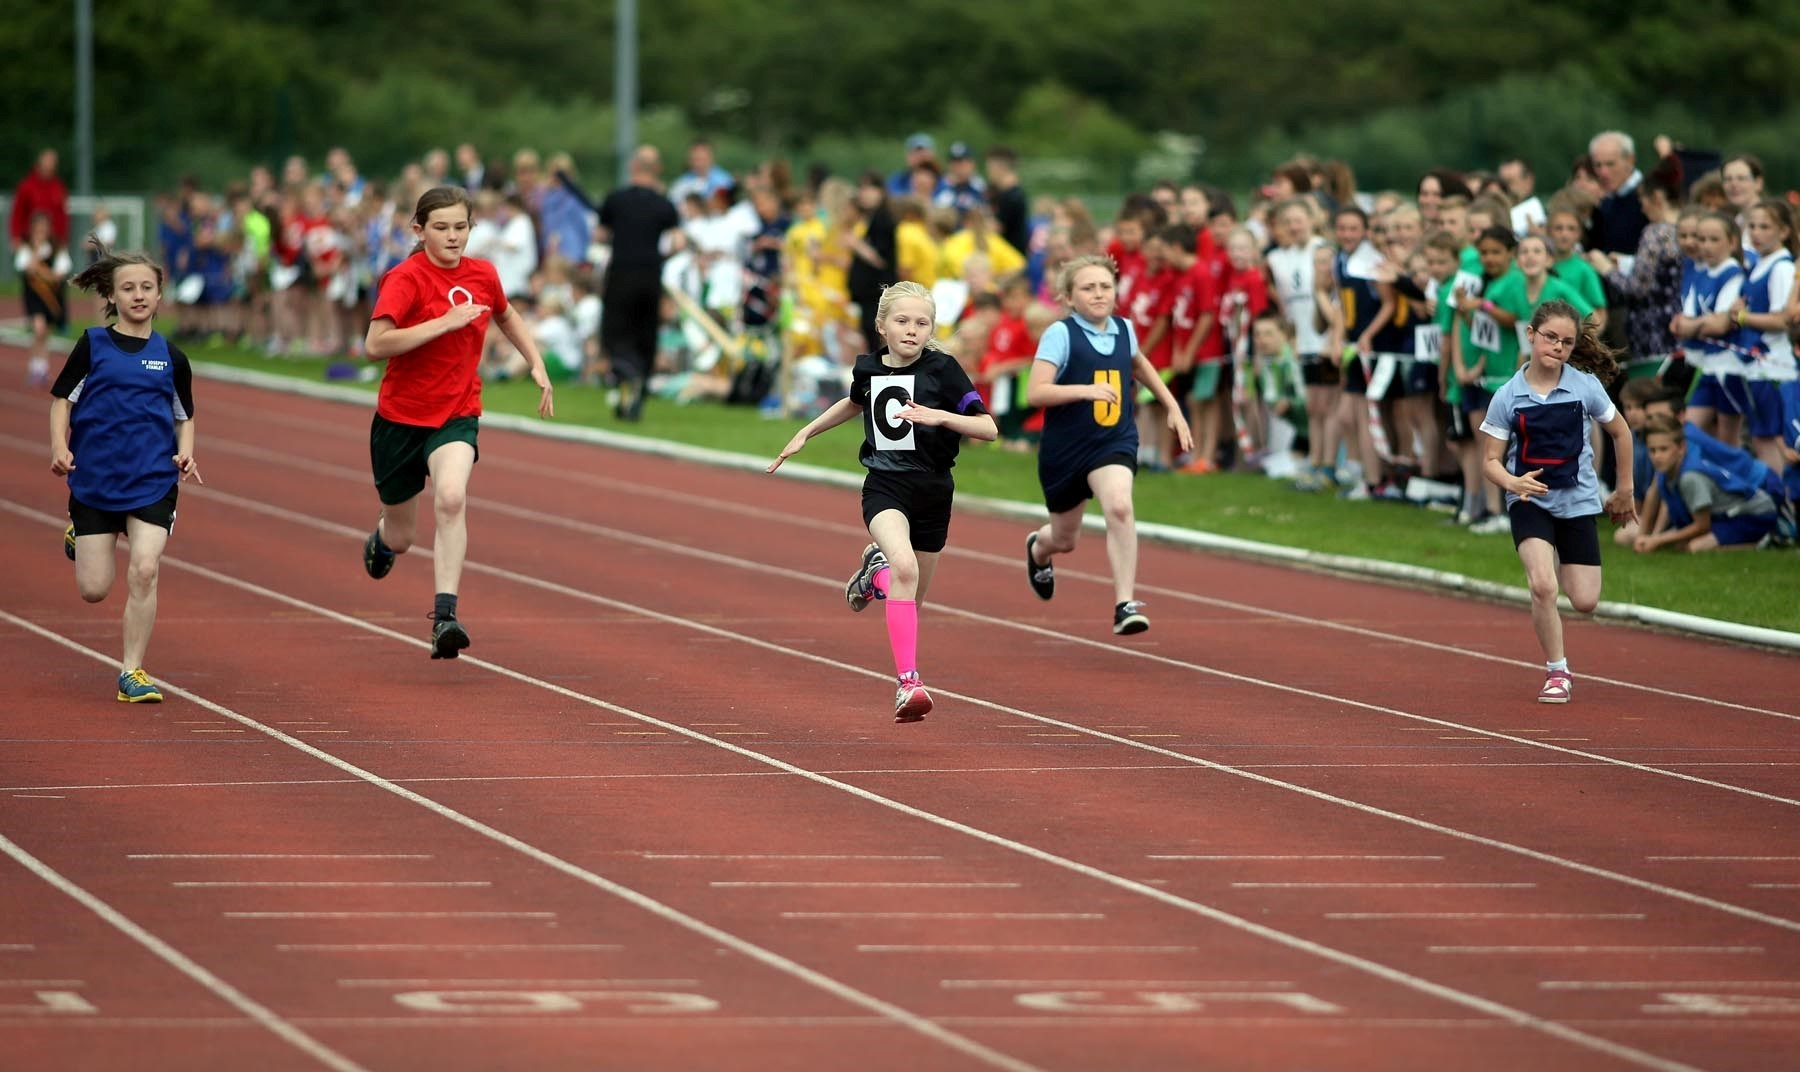 Athletics event reaches 50th anniversary